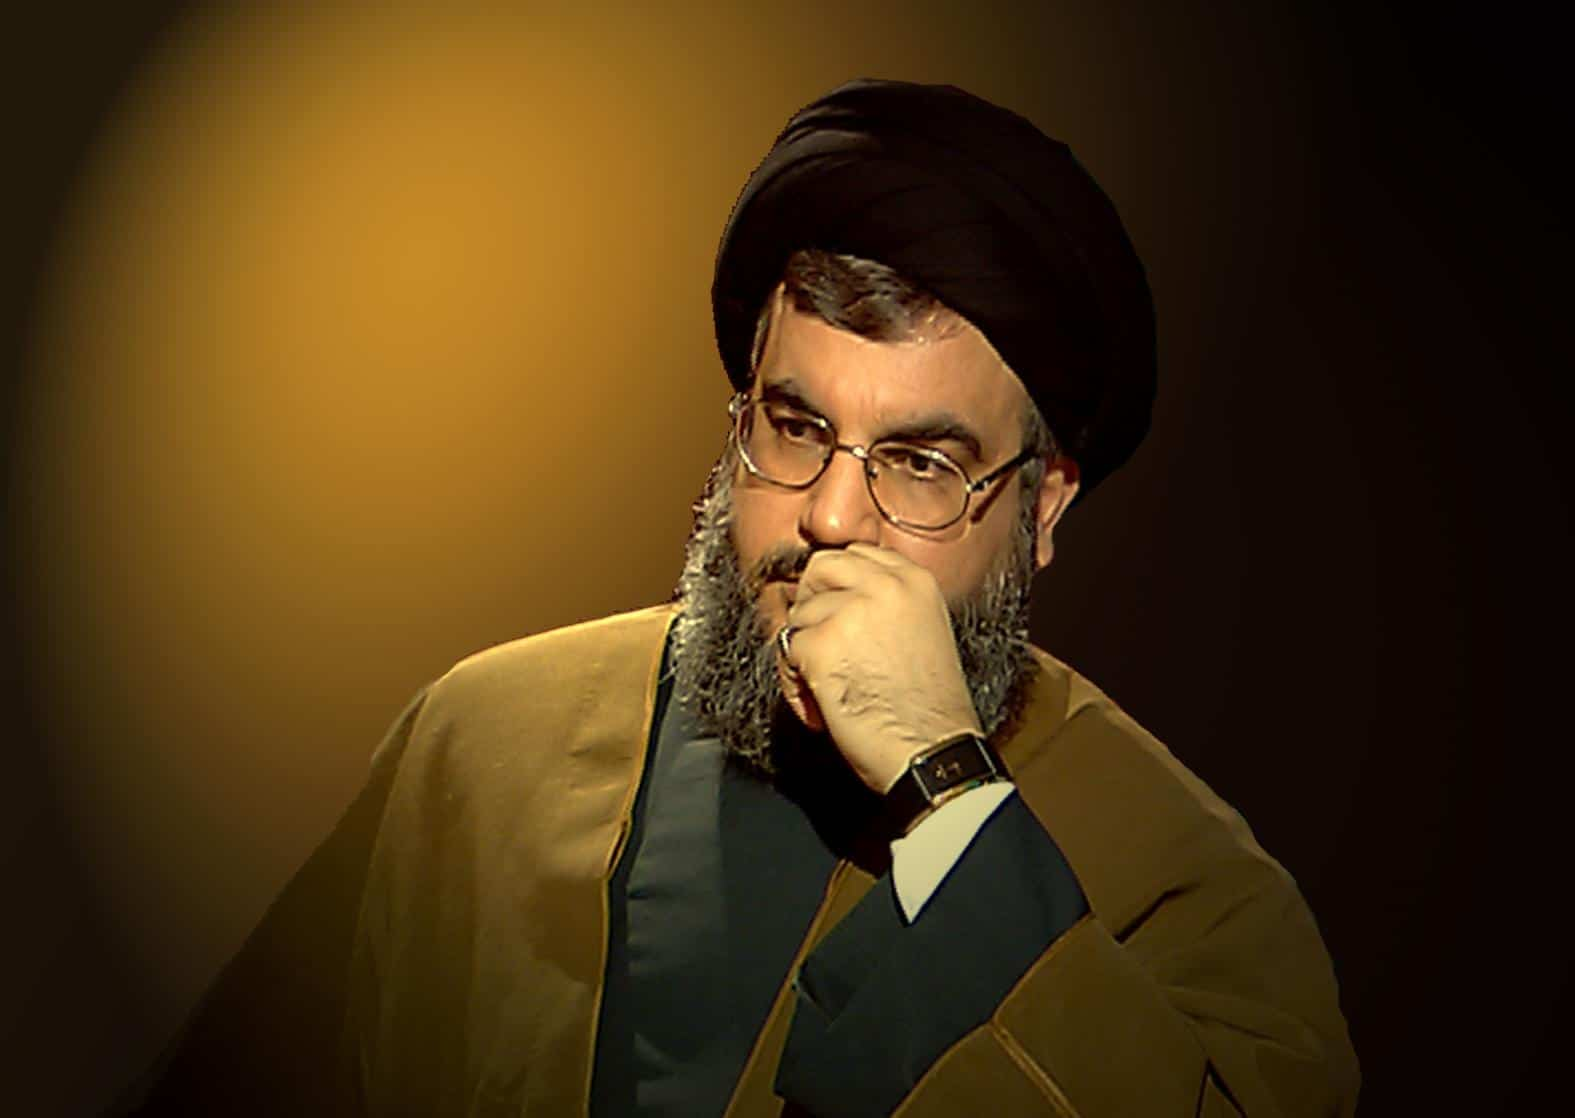 The Declining Popularity of Hezbollah-leader Hassan Nasrallah